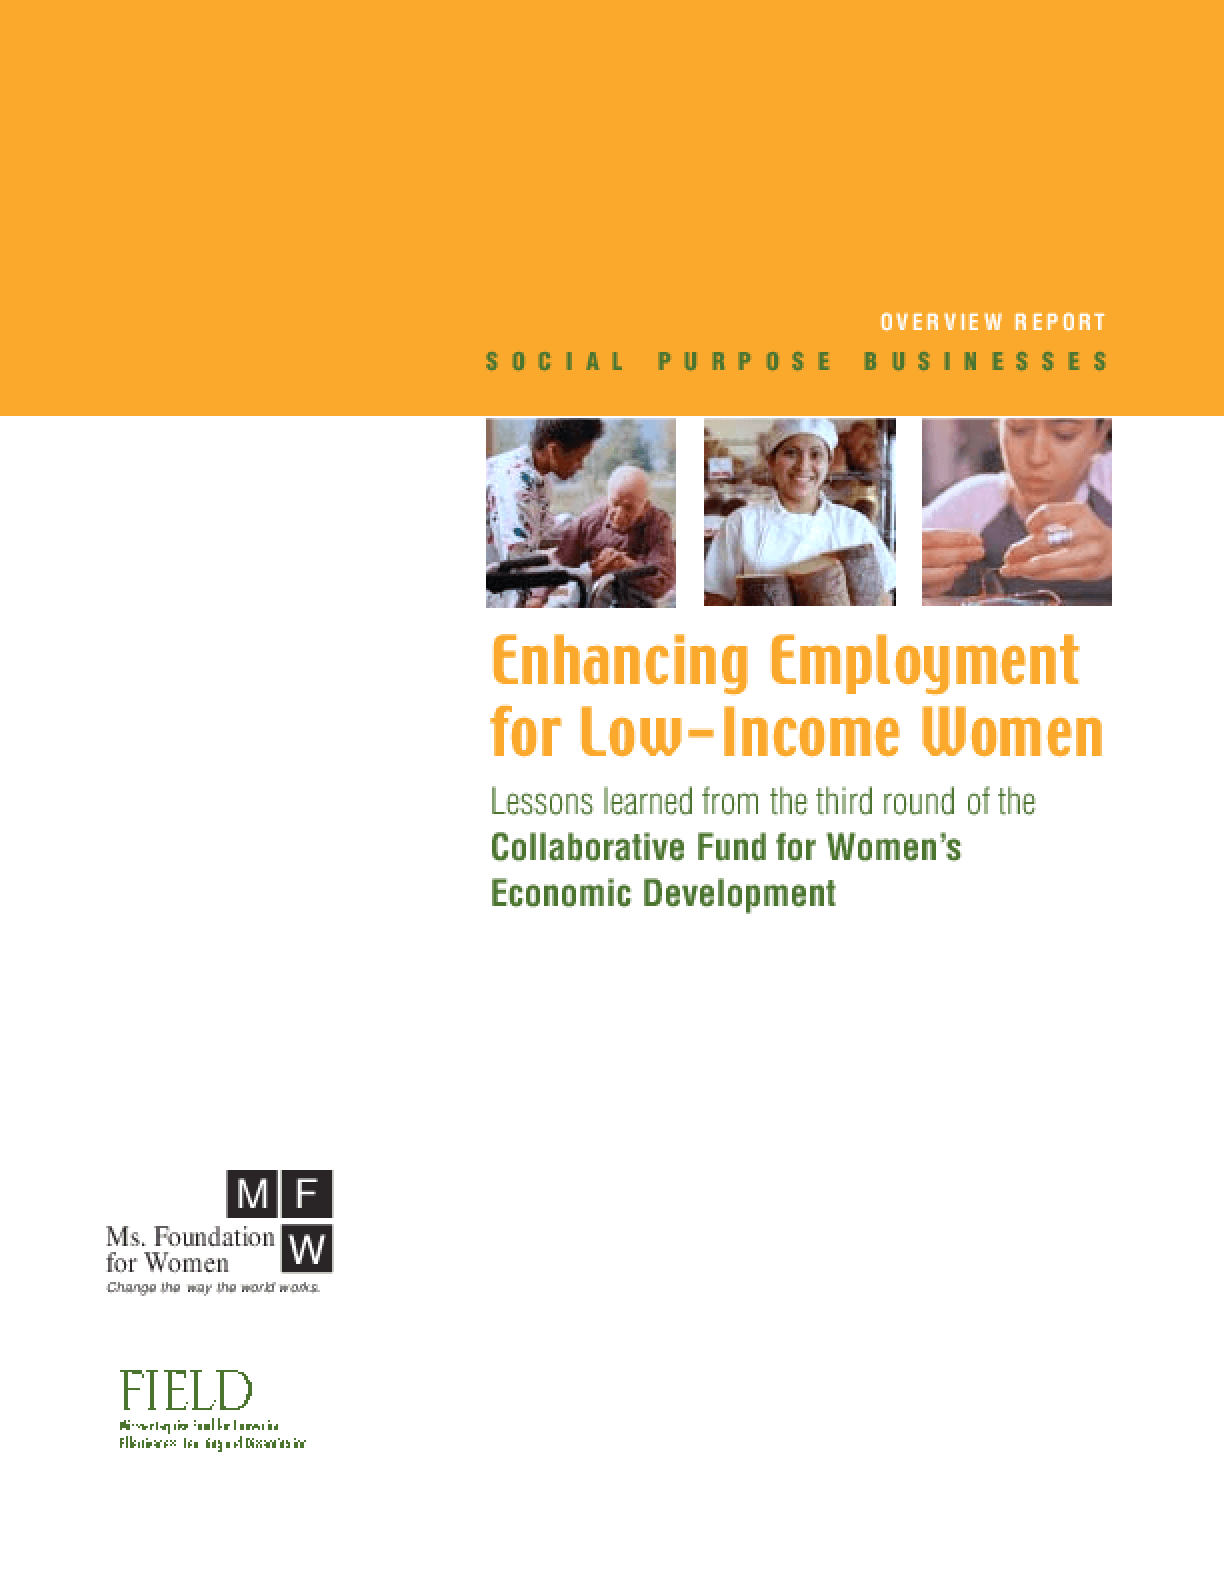 Enhancing Employment for Low-Income Women